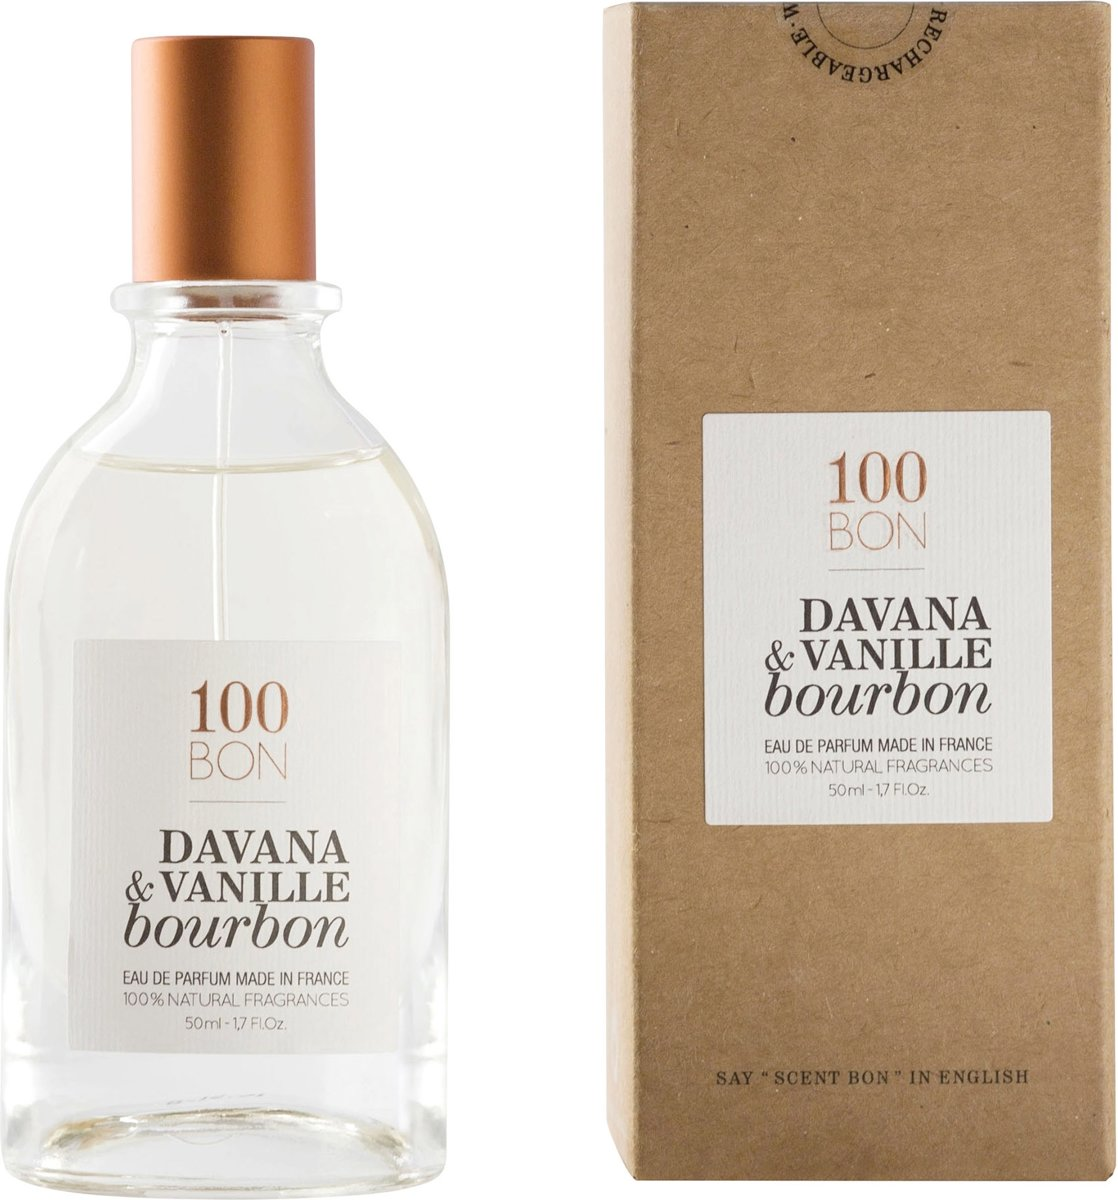 100BON EDT Davana & Vanille Bourbon - 50ml